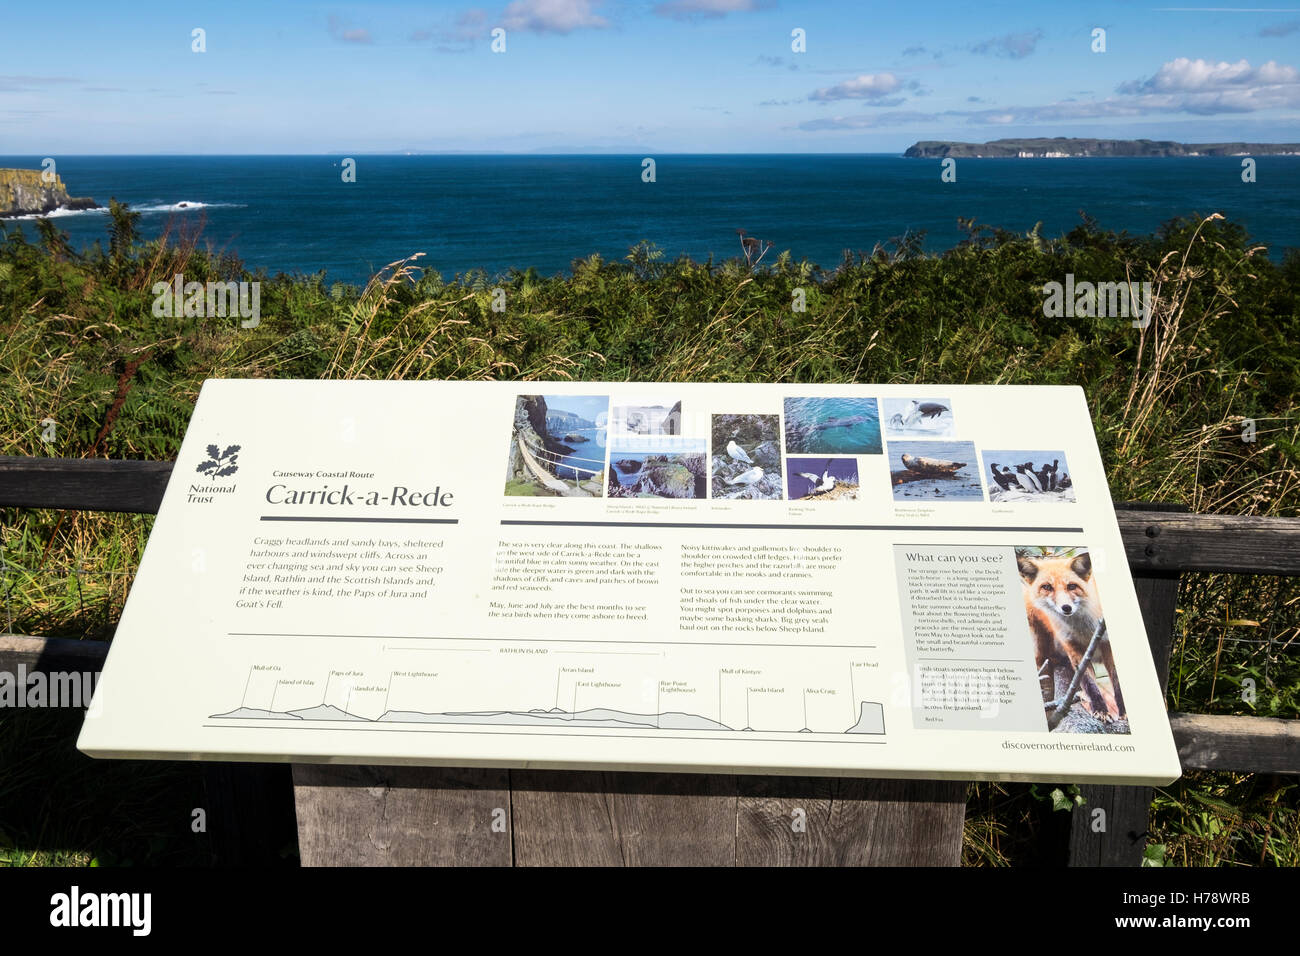 Touristic information board at Carrick a Rede on the north Antrim coastline, Ireland - Stock Image